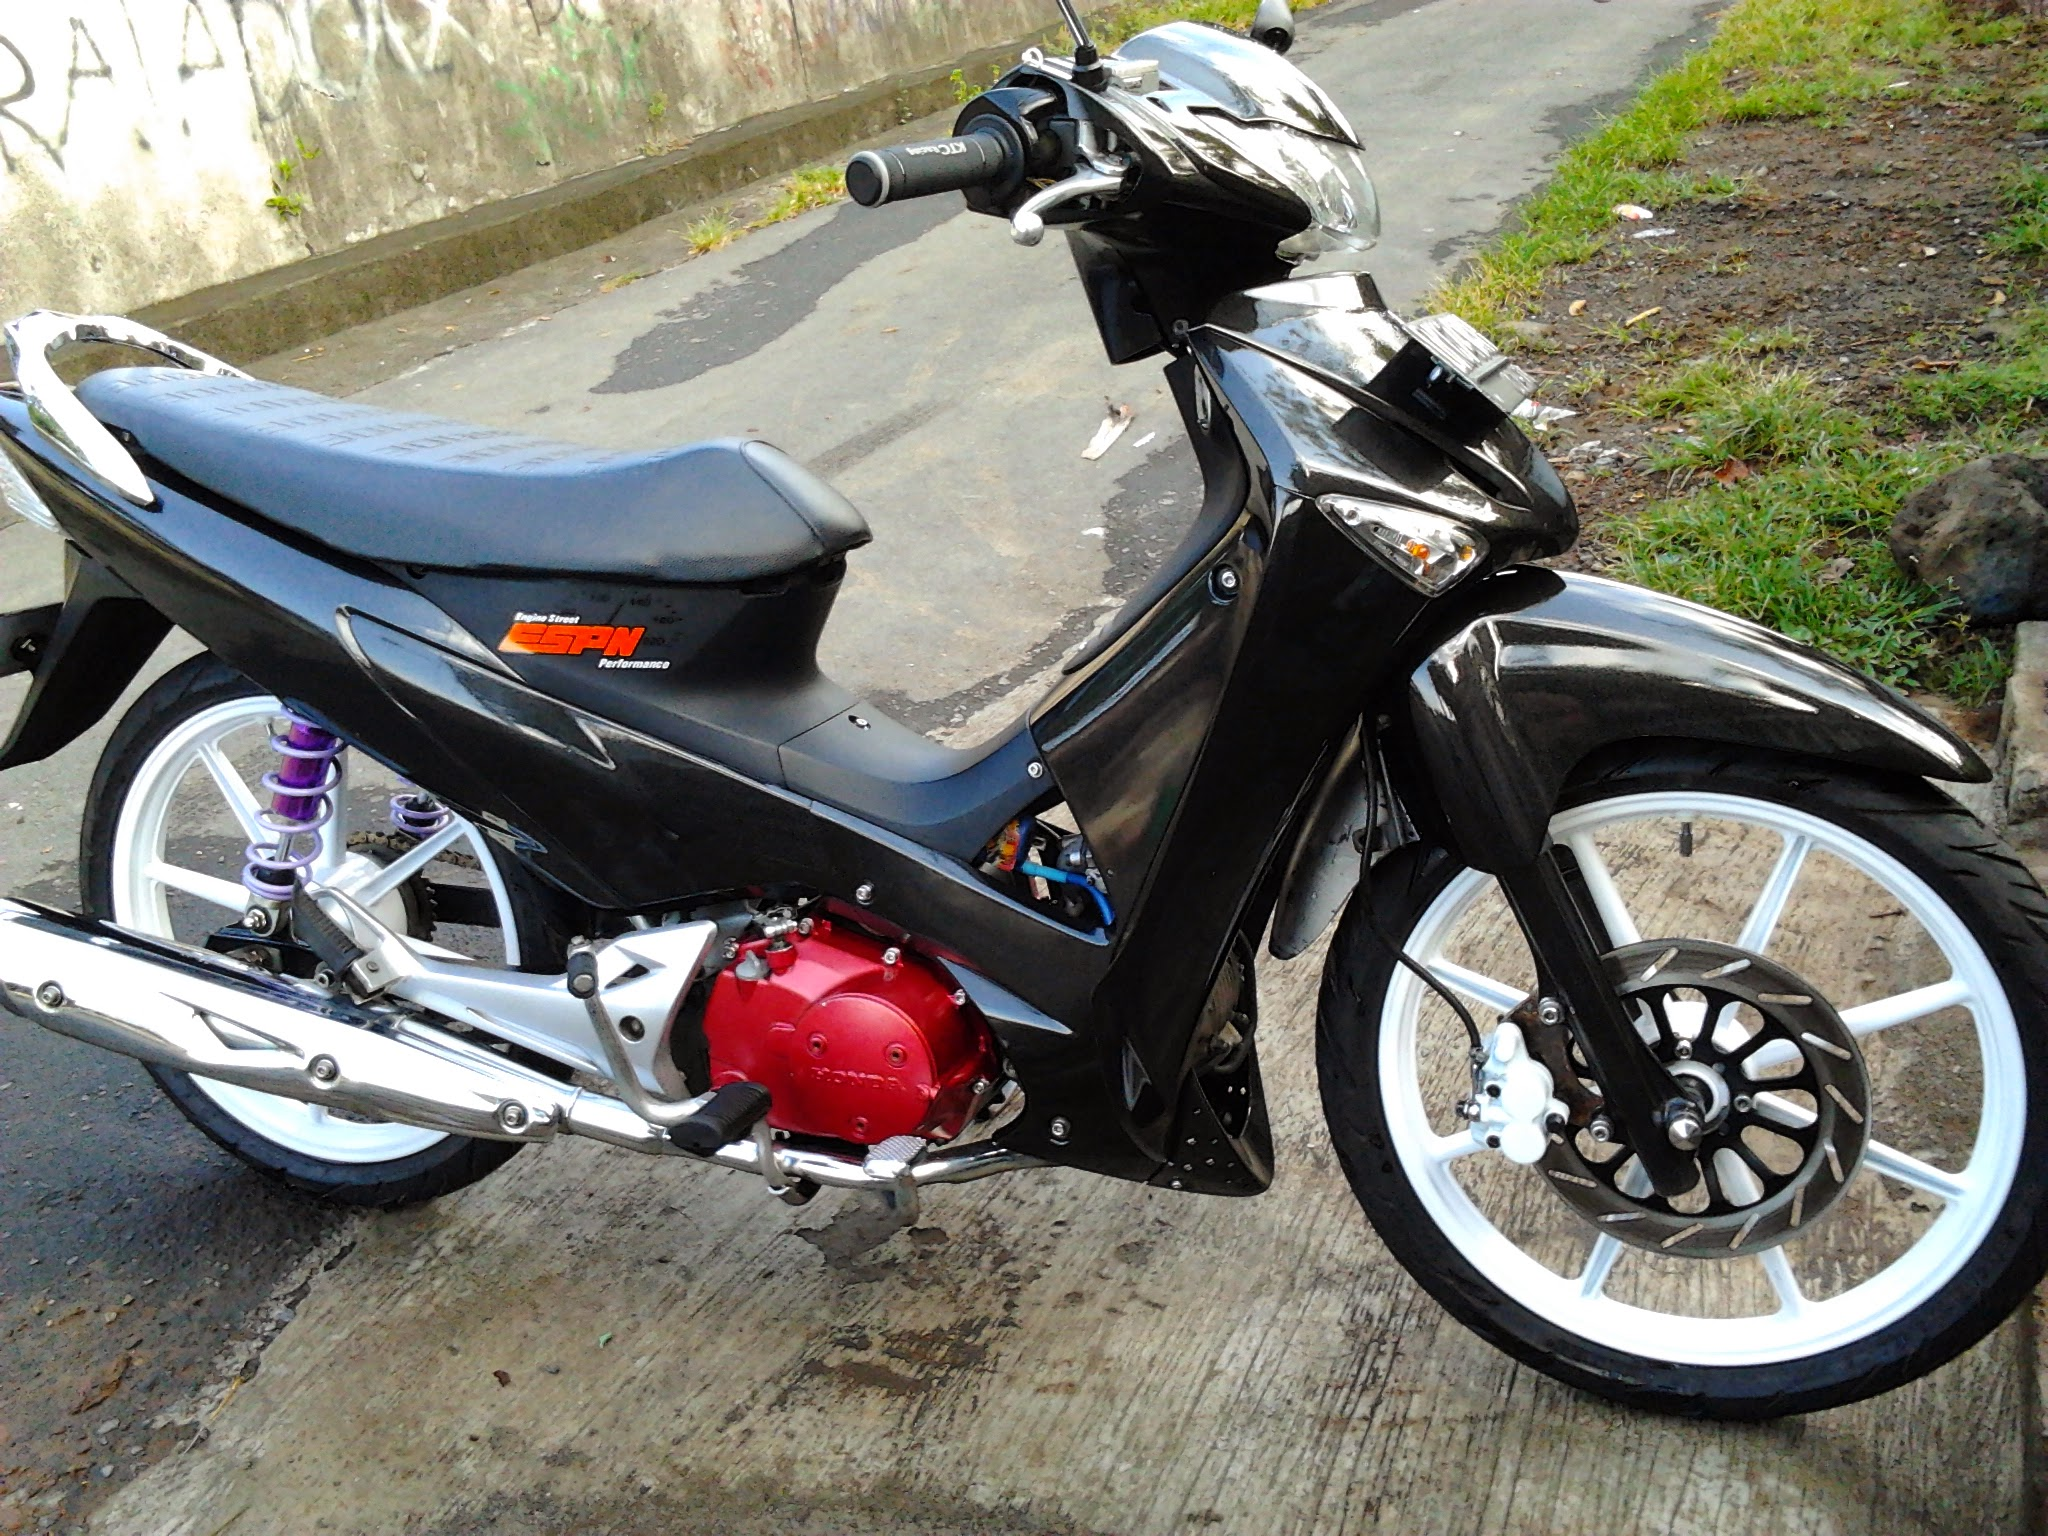 Motor Supra X 125 Modifikasi Warna